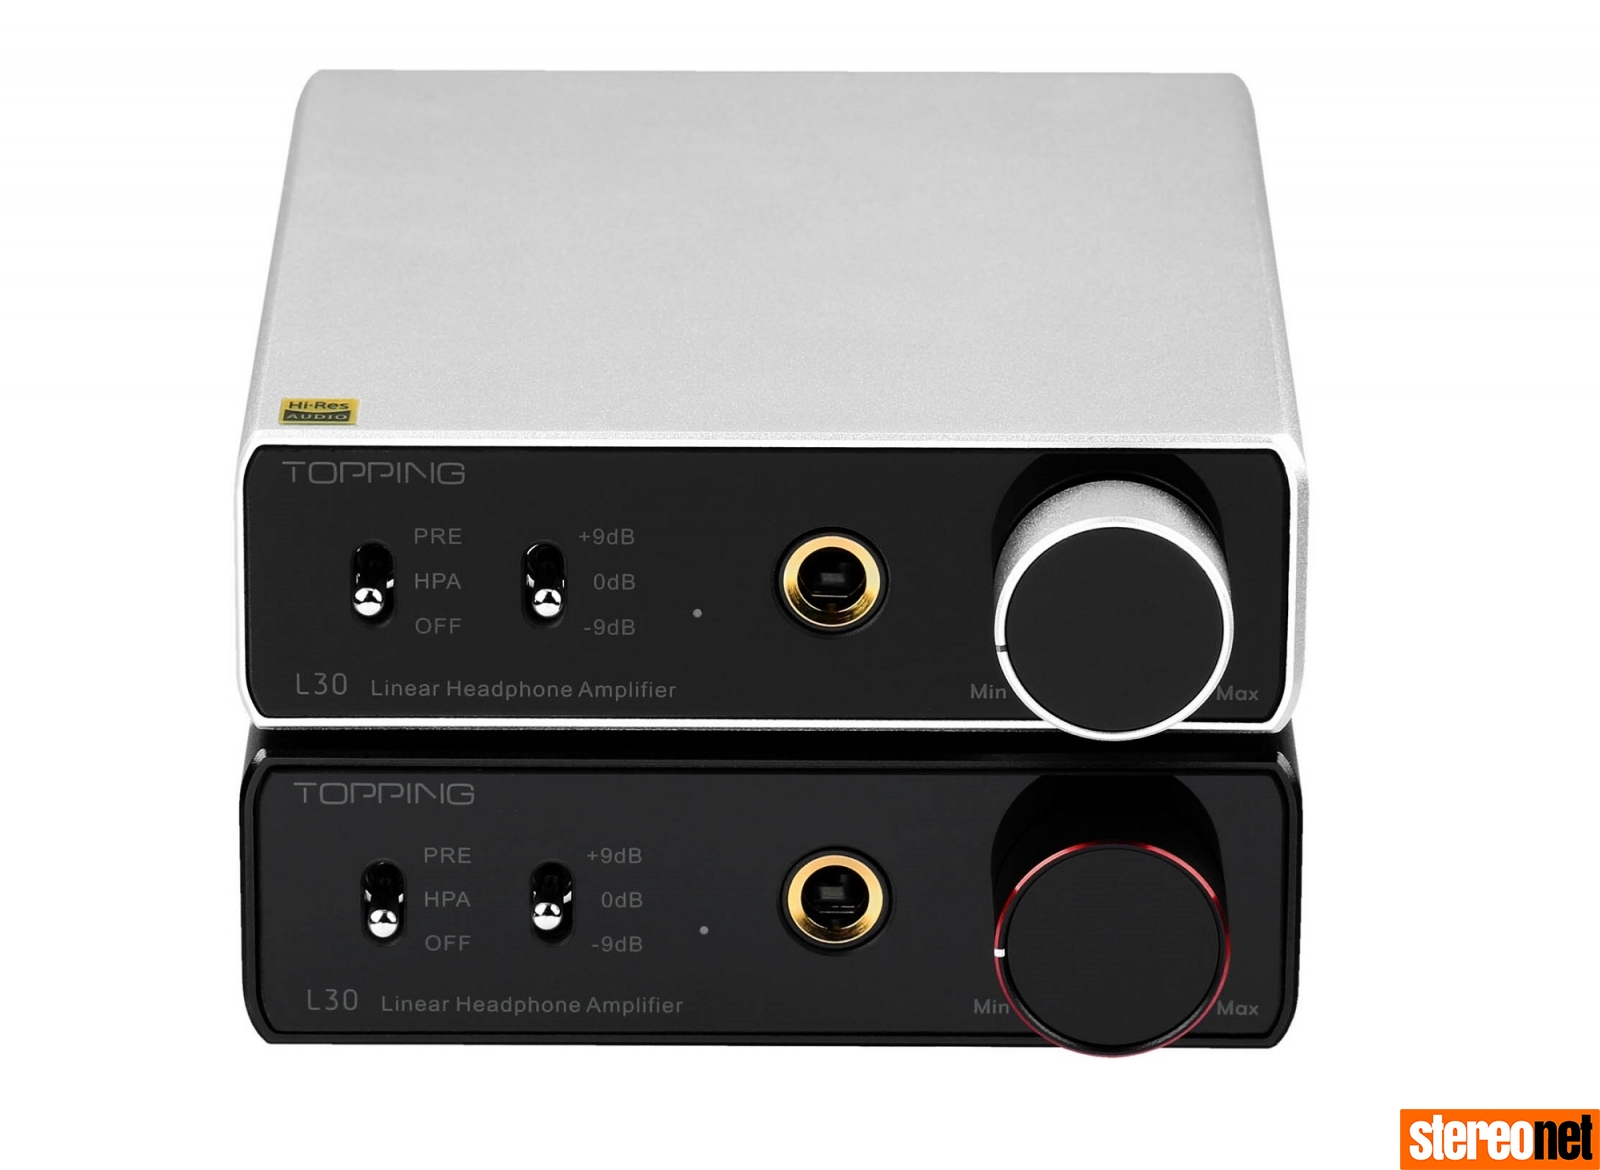 Topping L30 Headphone Amplifier Review